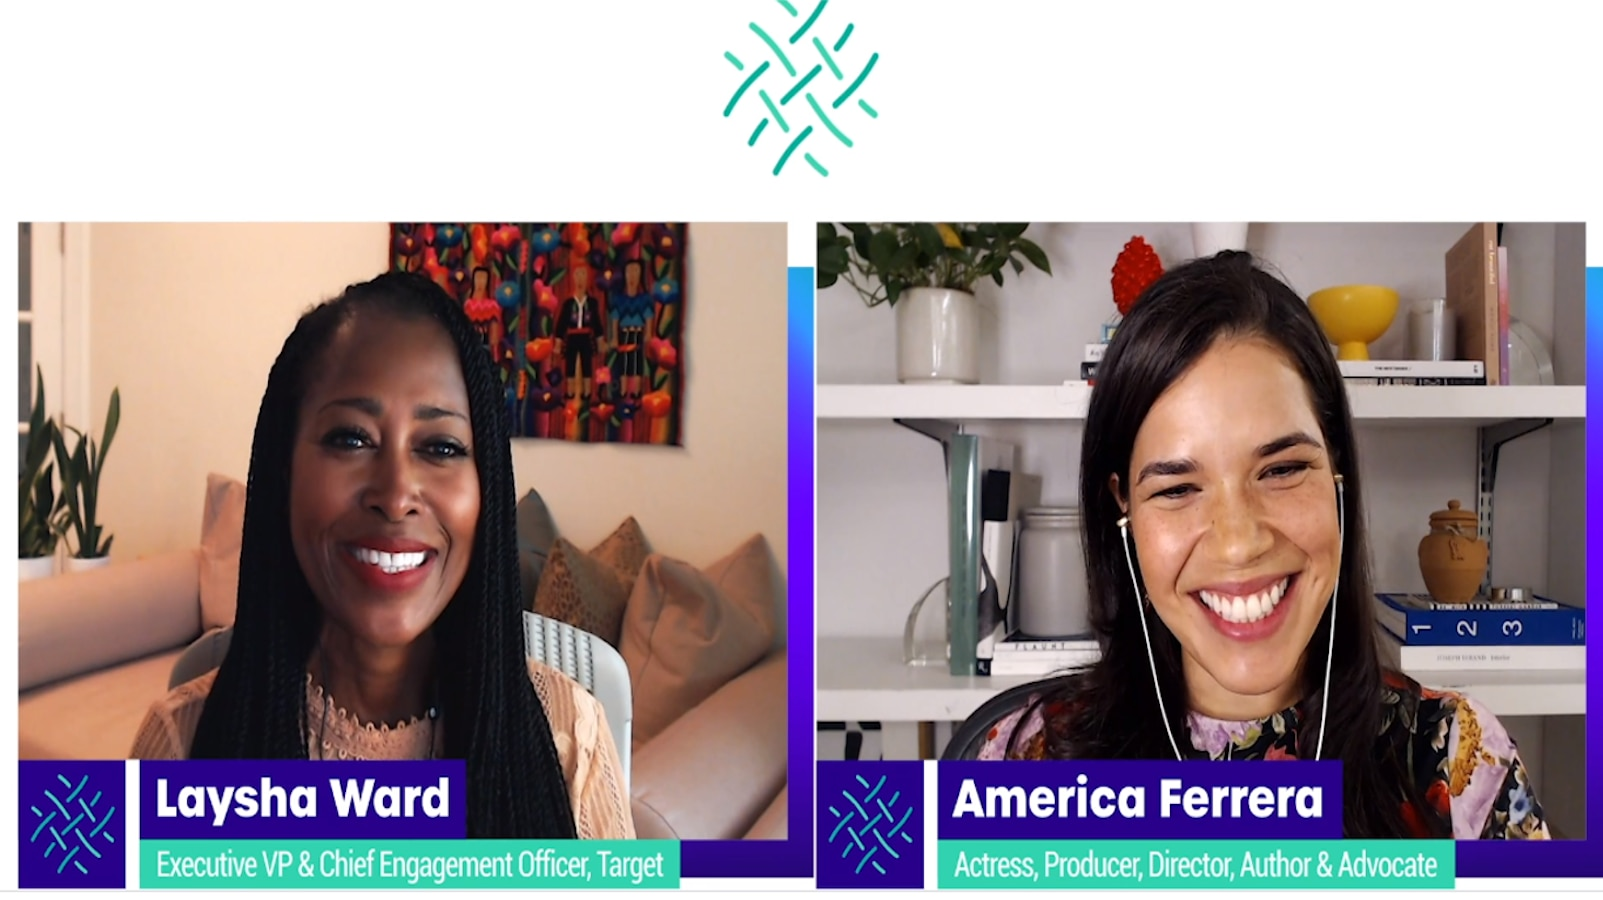 At Texas Women's Foundation's virtual fundraiser in late September, award-winning actress and bestselling author America Ferrera and Laysha Ward, executive vice president and chief external engagement officer for retail giant Target, talked about sisterhood and superpowers.